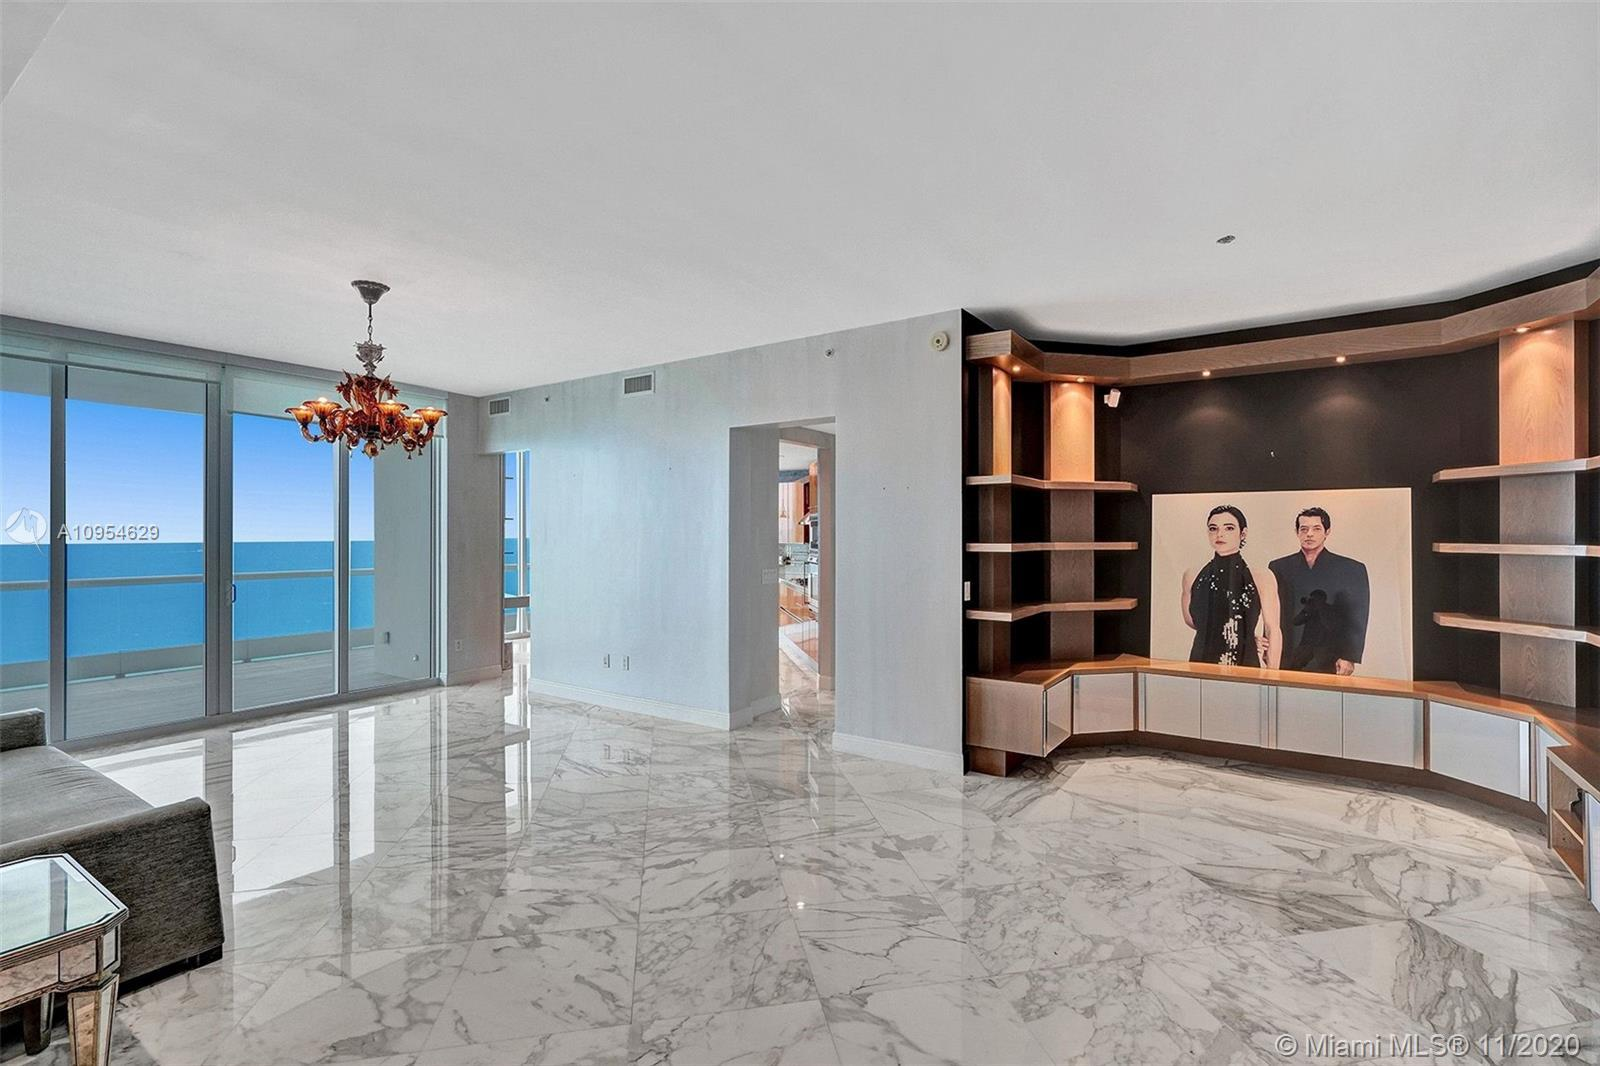 Turnberry Ocean Colony: One of my favorite condominiums on the ocean in Sunny Isles. Fabulous split